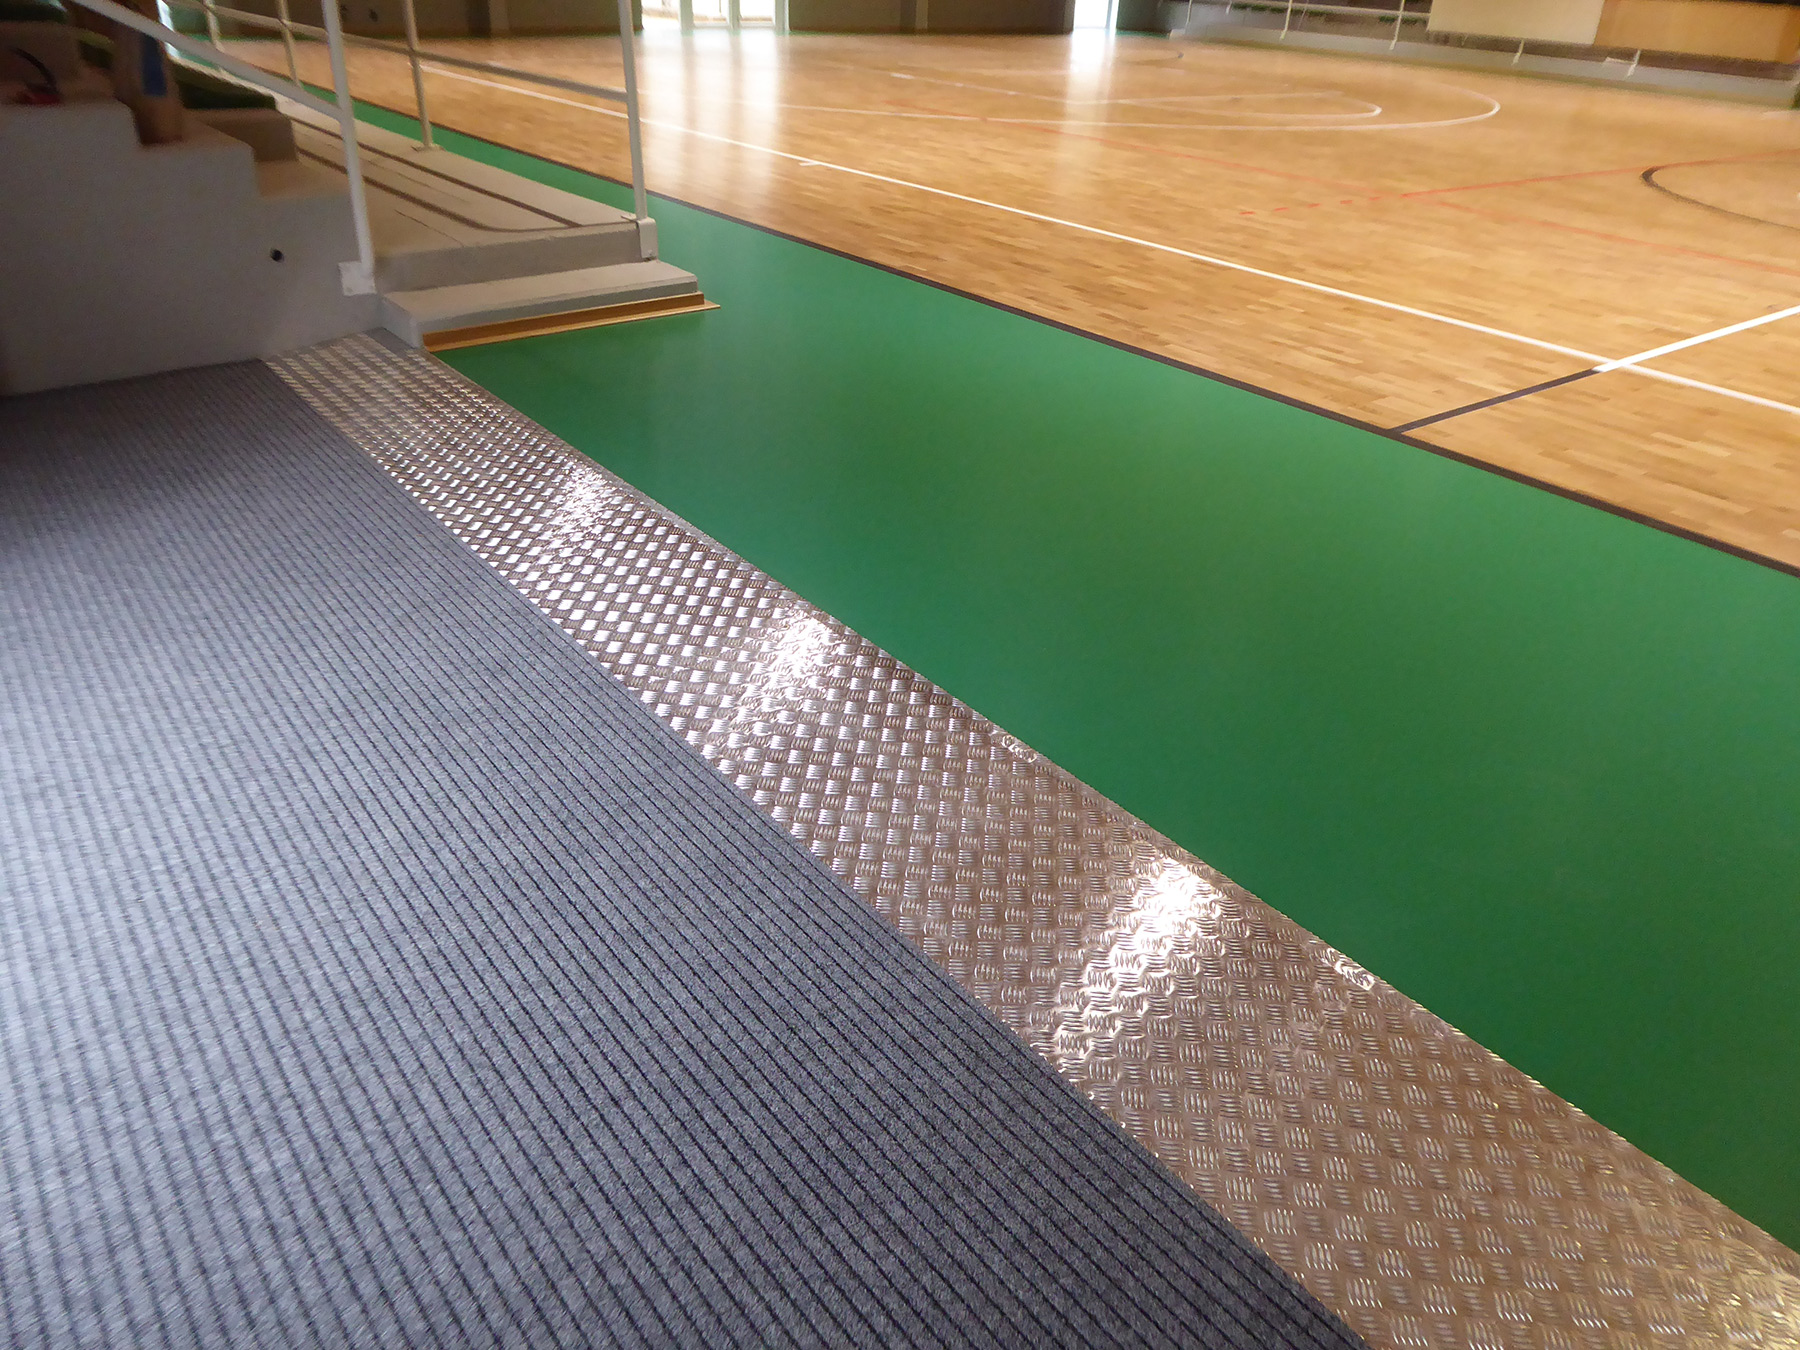 The entrance slide with attached doormat for cleaning shoes